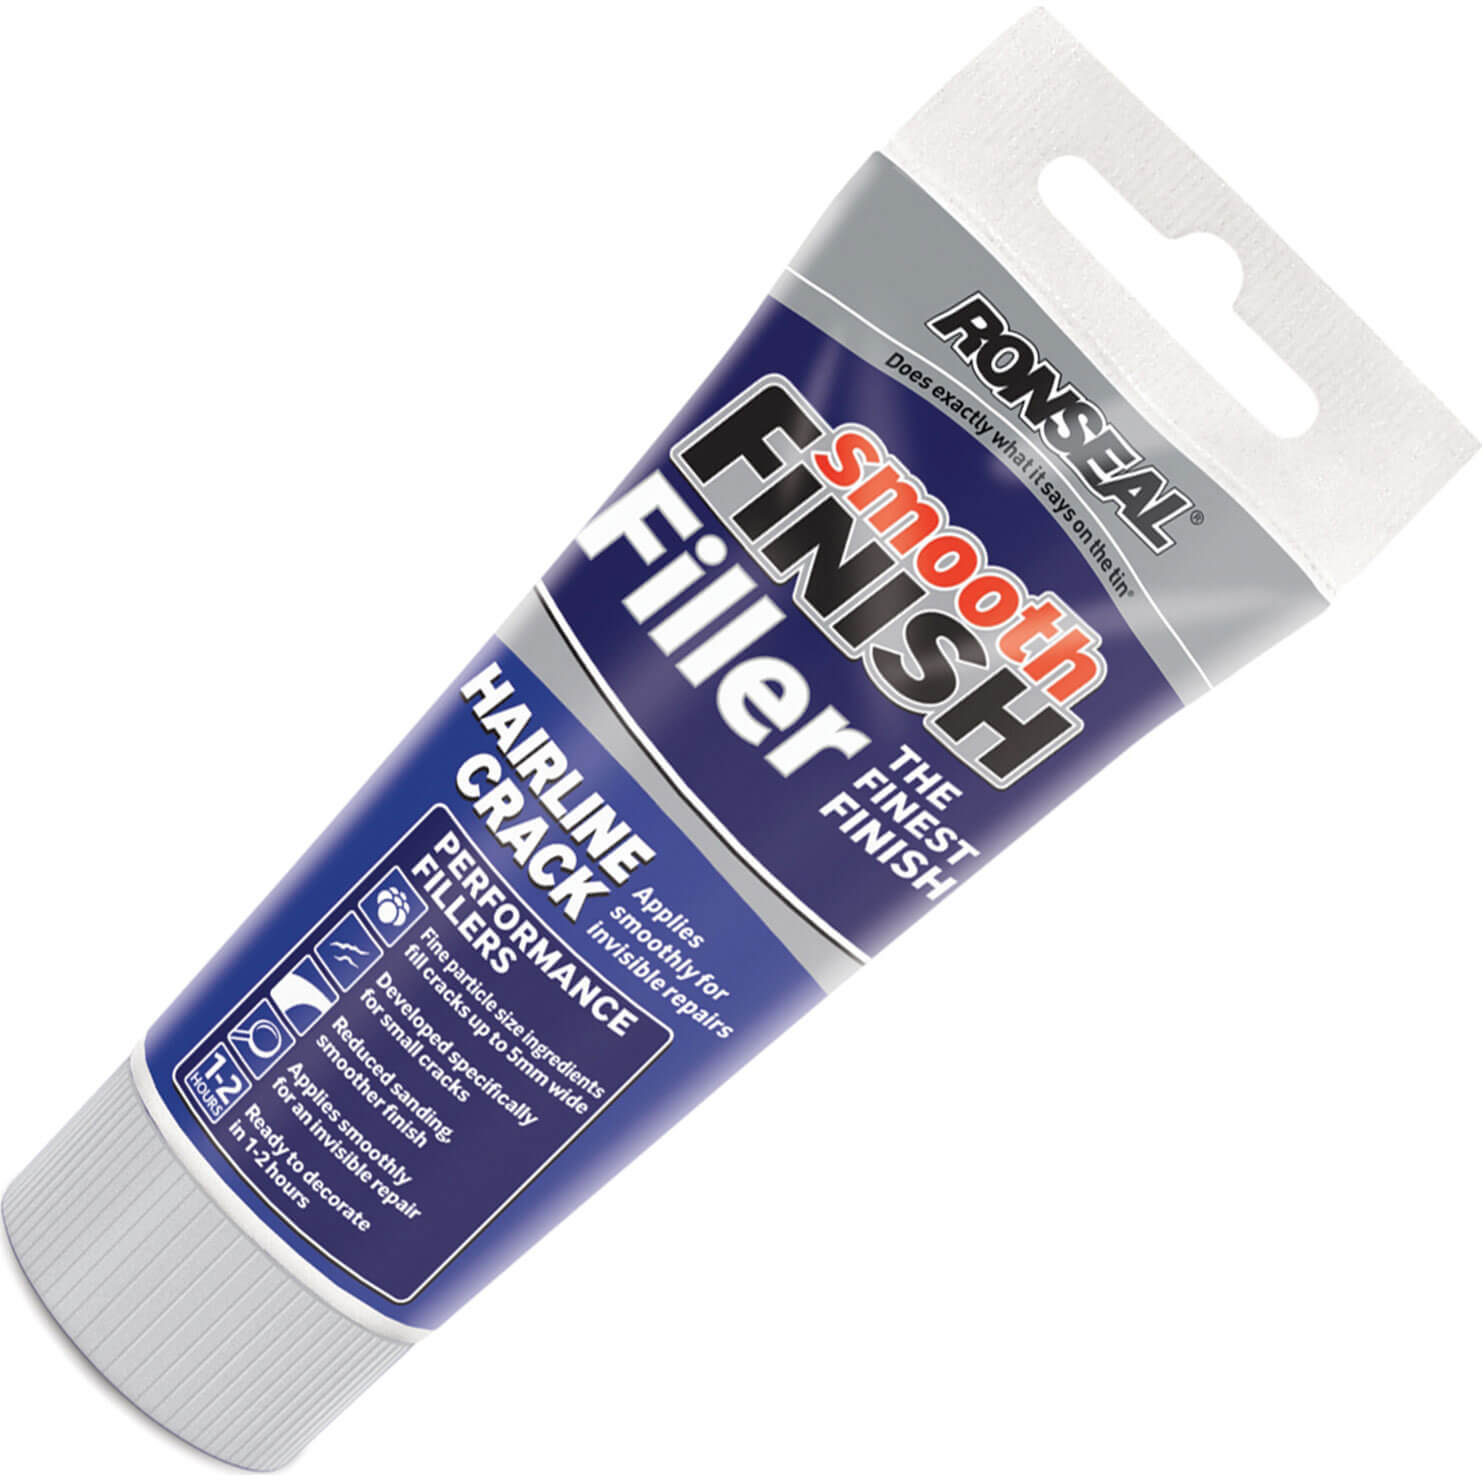 Tooled Up/Sealants & Adhesives/Fillers/Ronseal Smooth Finish Hairline Crack Filler 100g